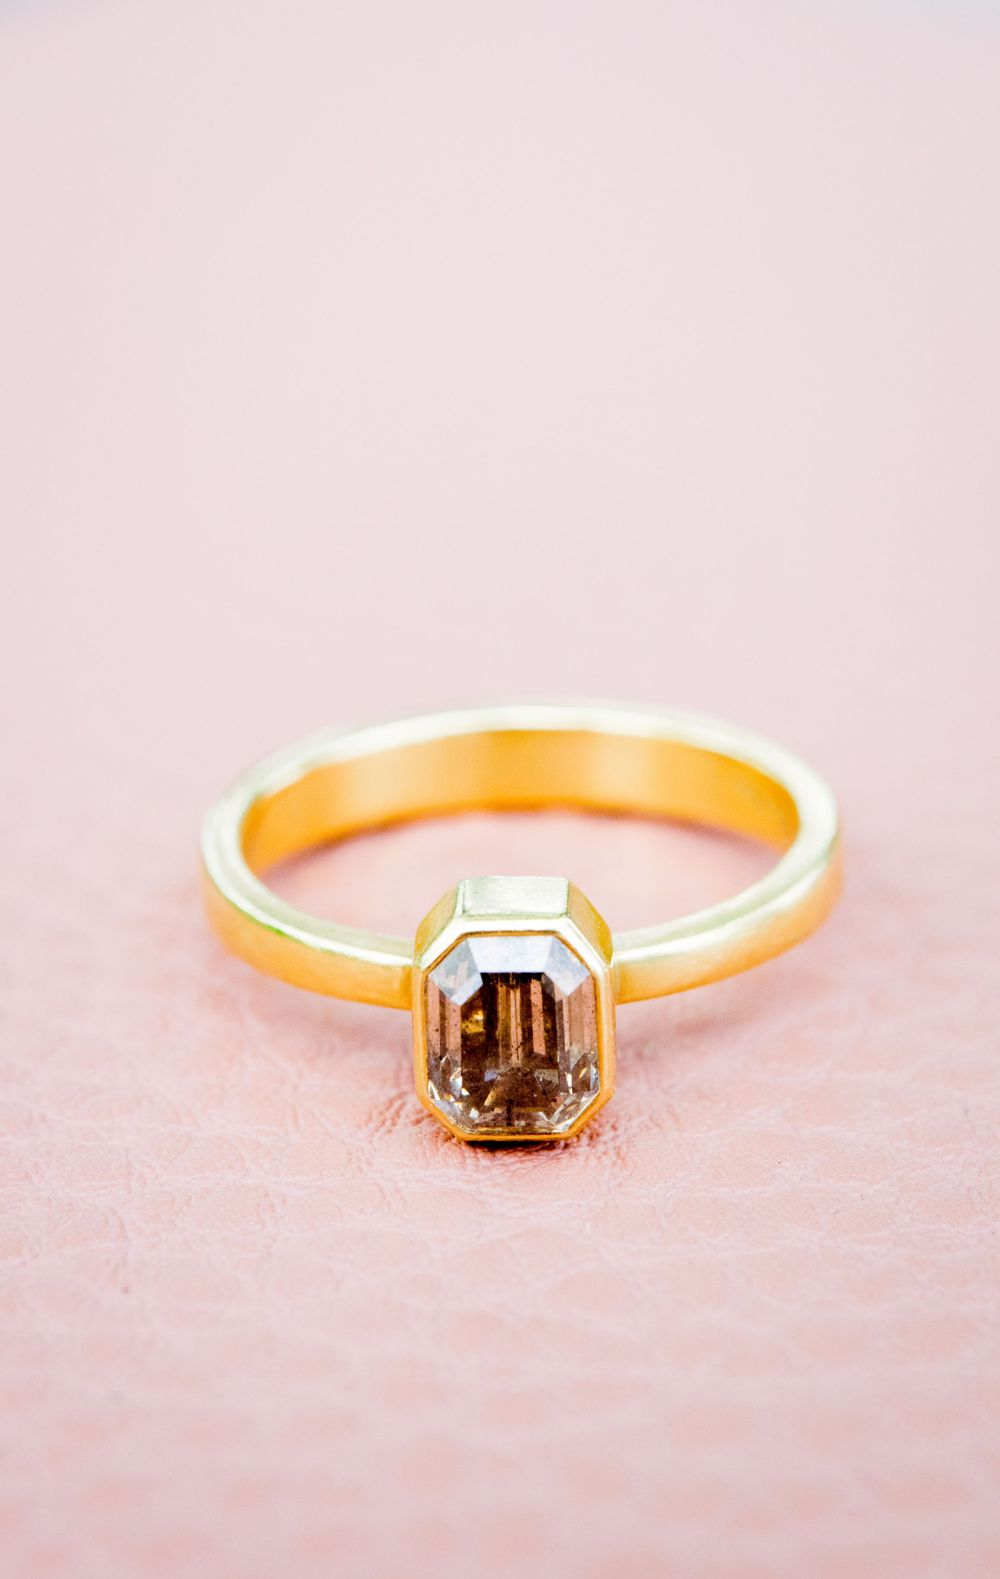 gold emerald cut engagement ring with a smoky natural diamond on a pink leather bag